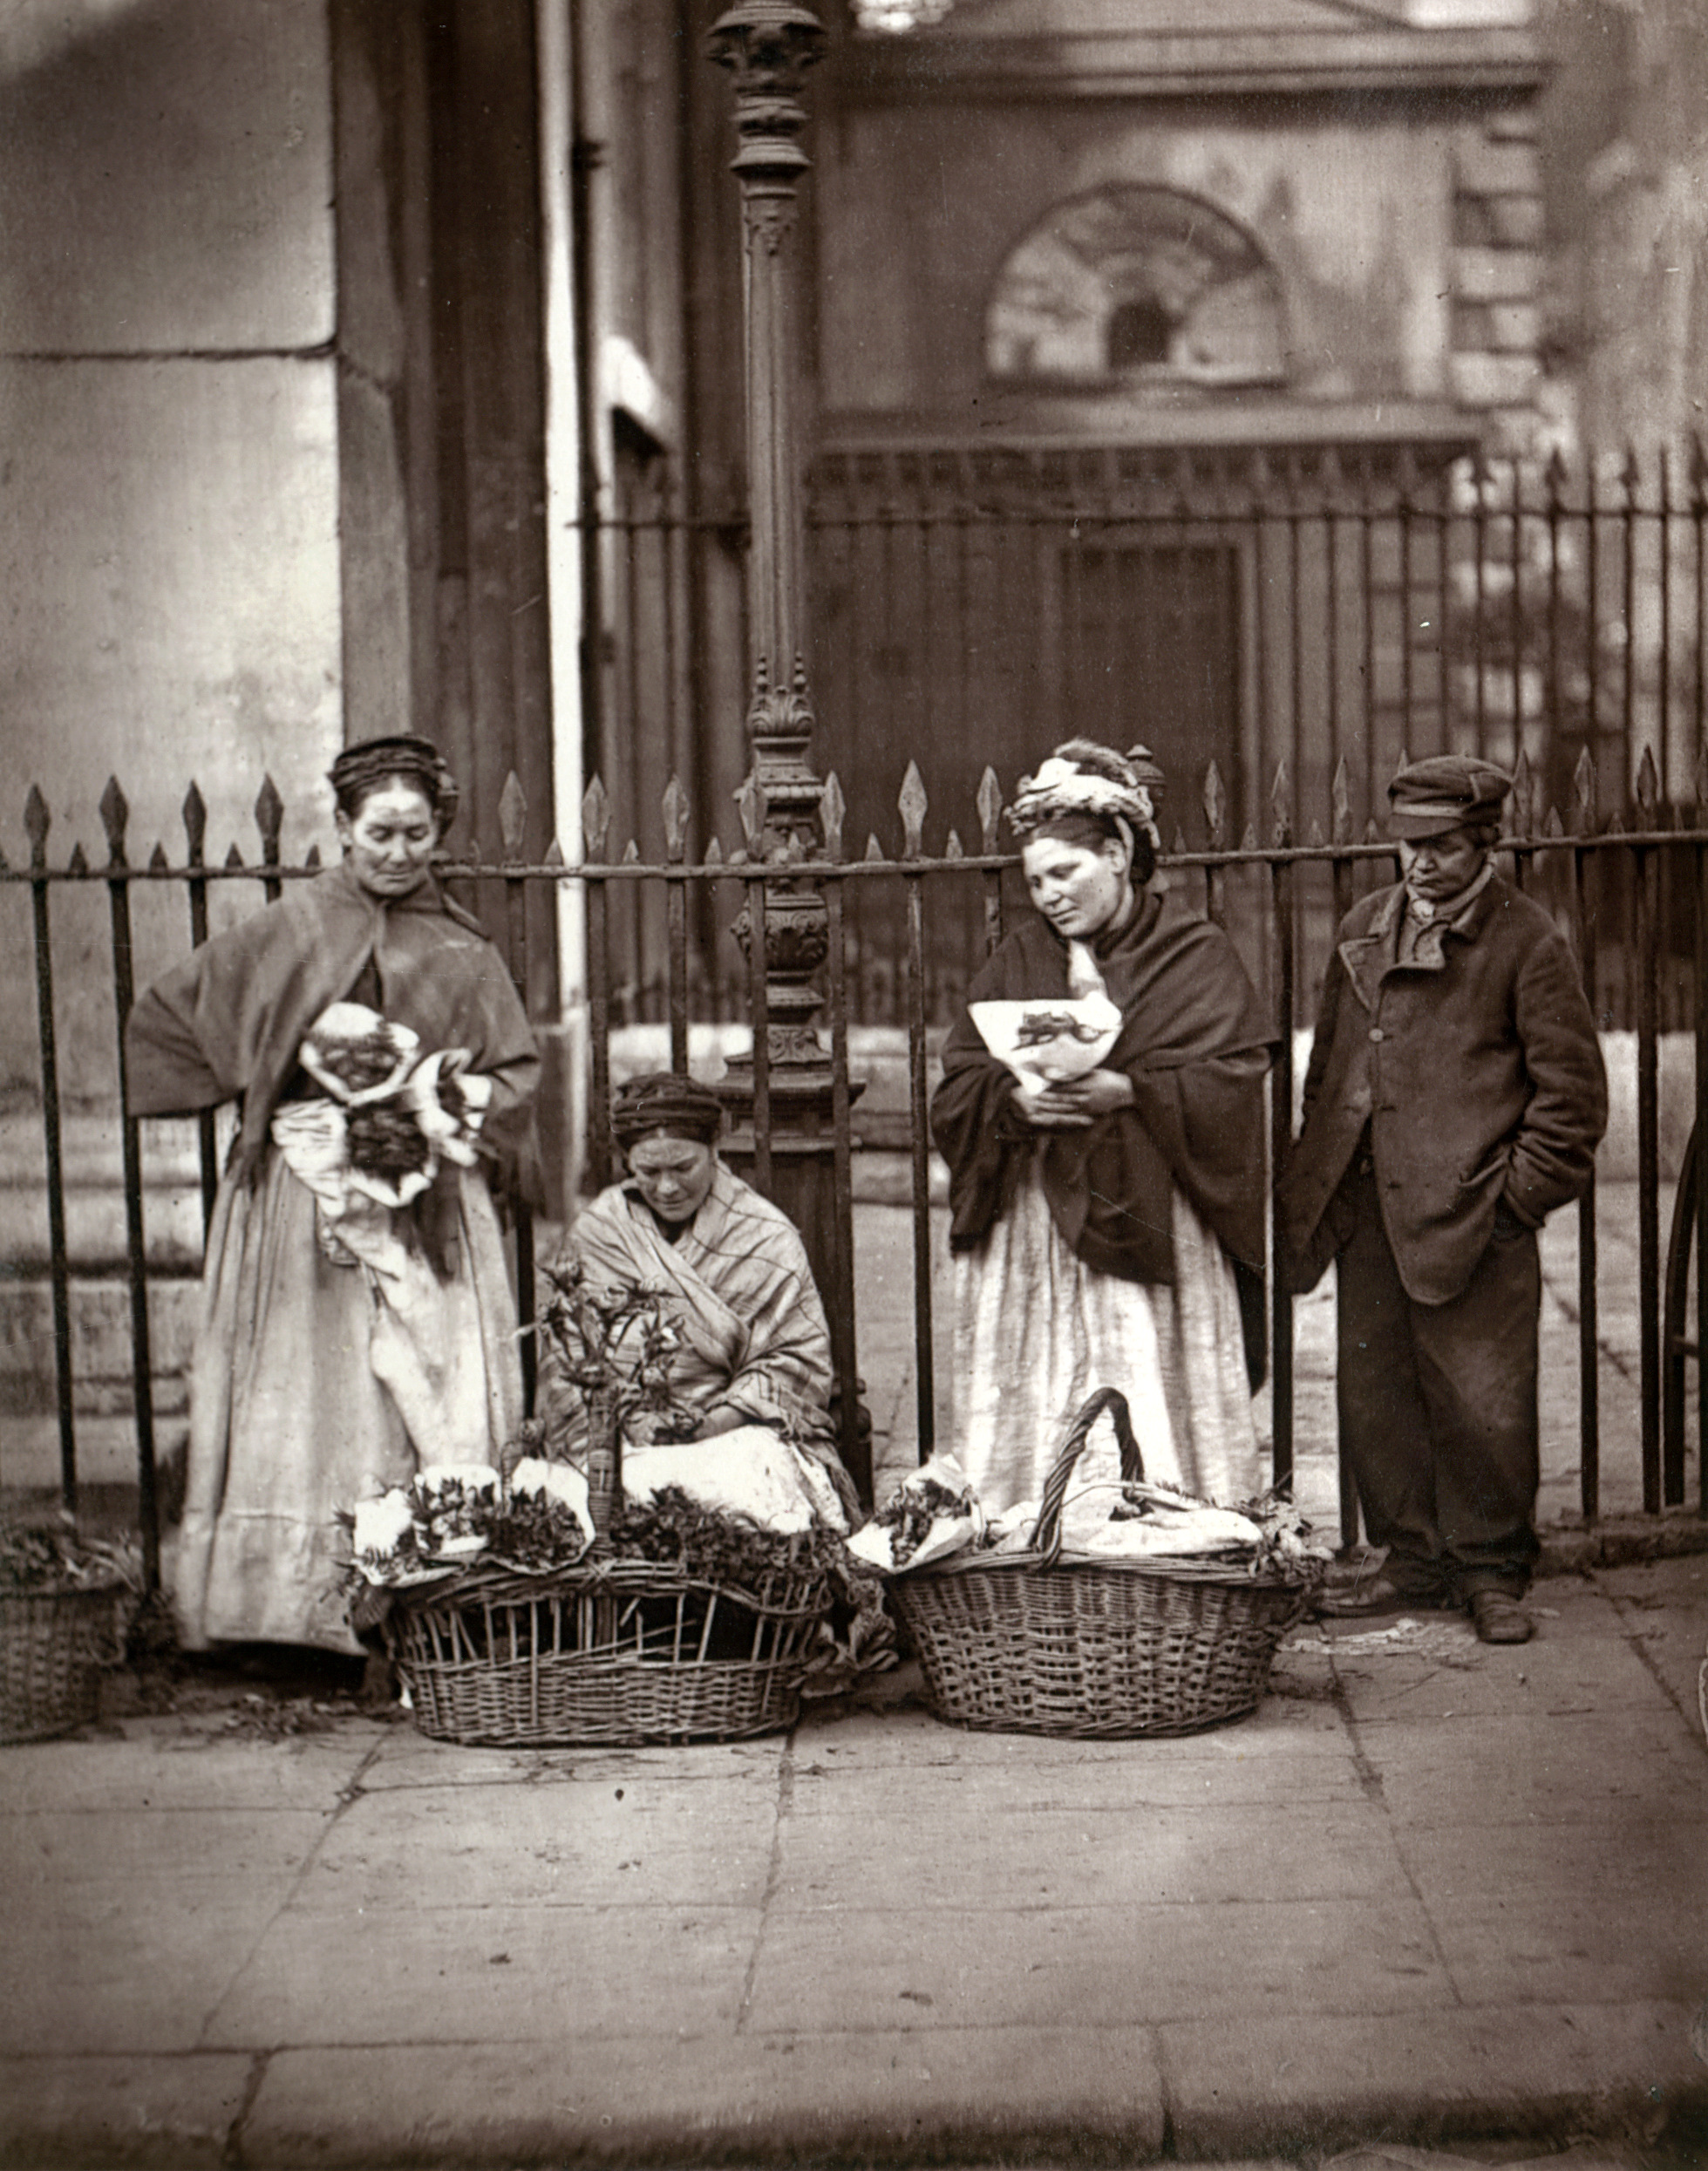 Black and white photograph showing three women with baskets of flowers and a man  in a cap looking on.